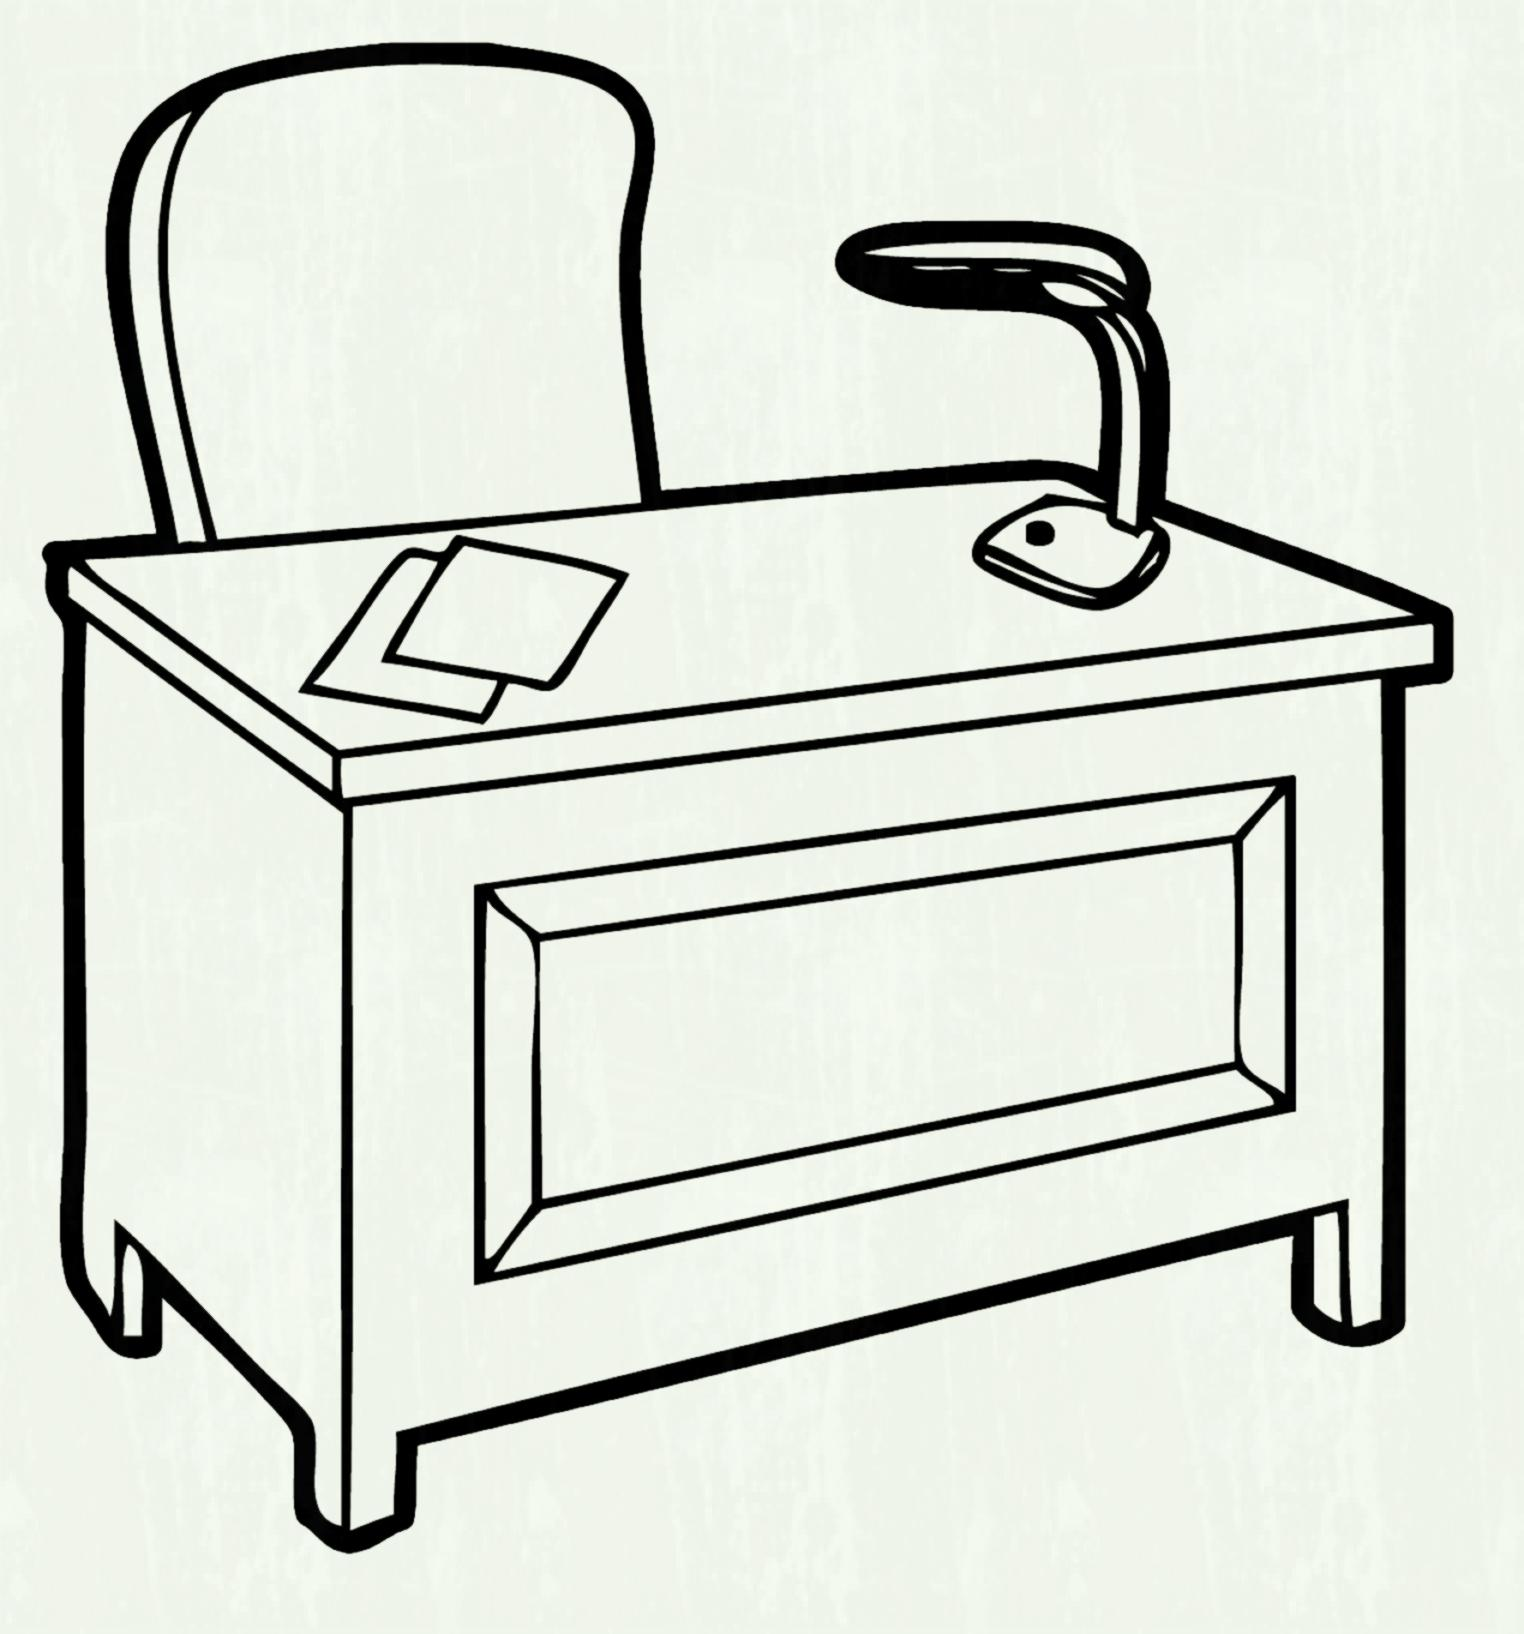 Office Desk Clipart Black And White 10 Free Cliparts